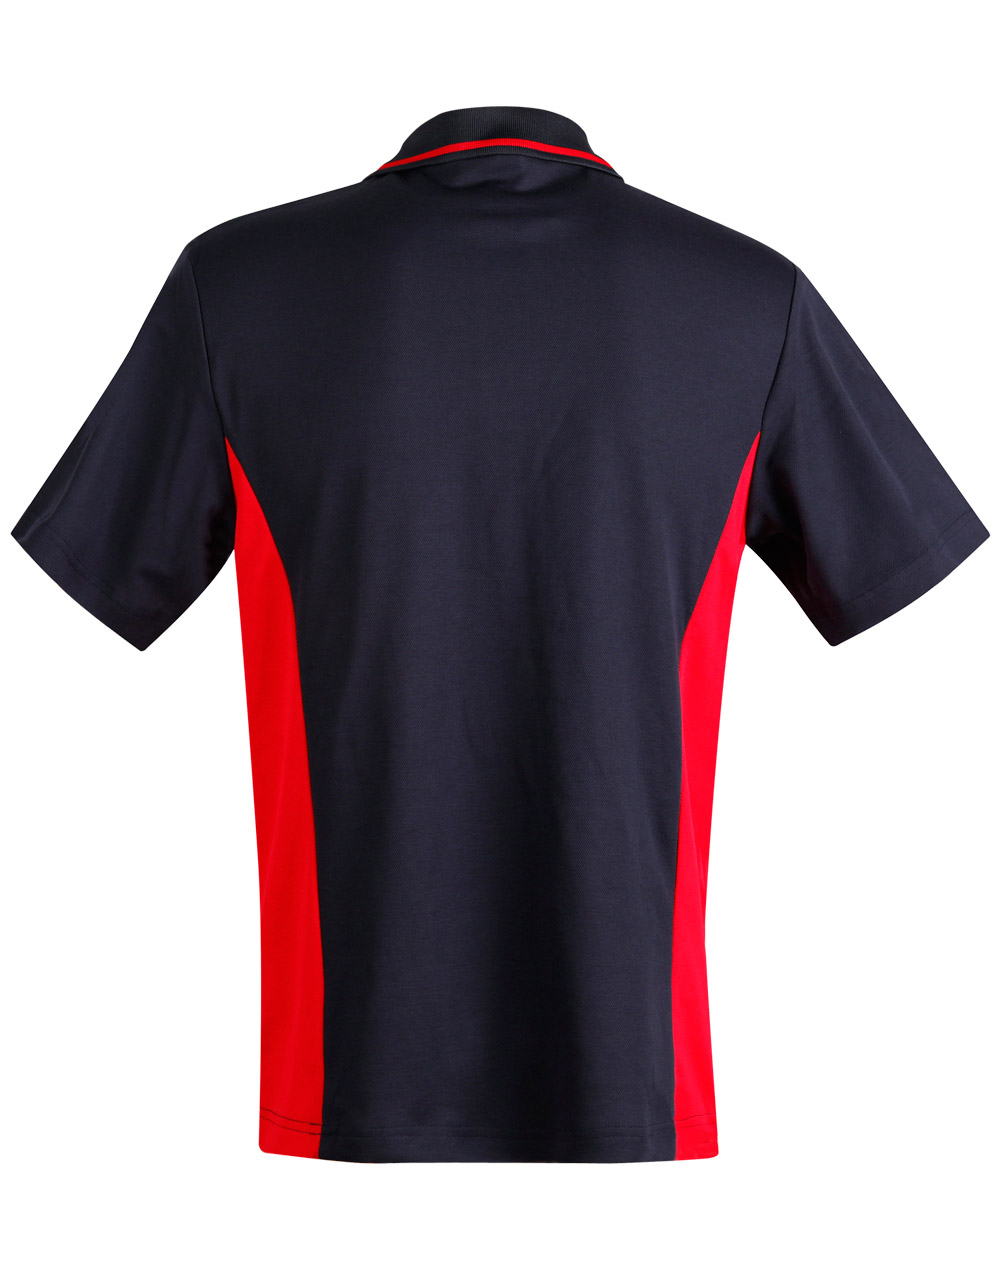 https://s3-ap-southeast-1.amazonaws.com/ws-imgs/POLOSHIRTS/PS73_NavyRed_Back.jpg